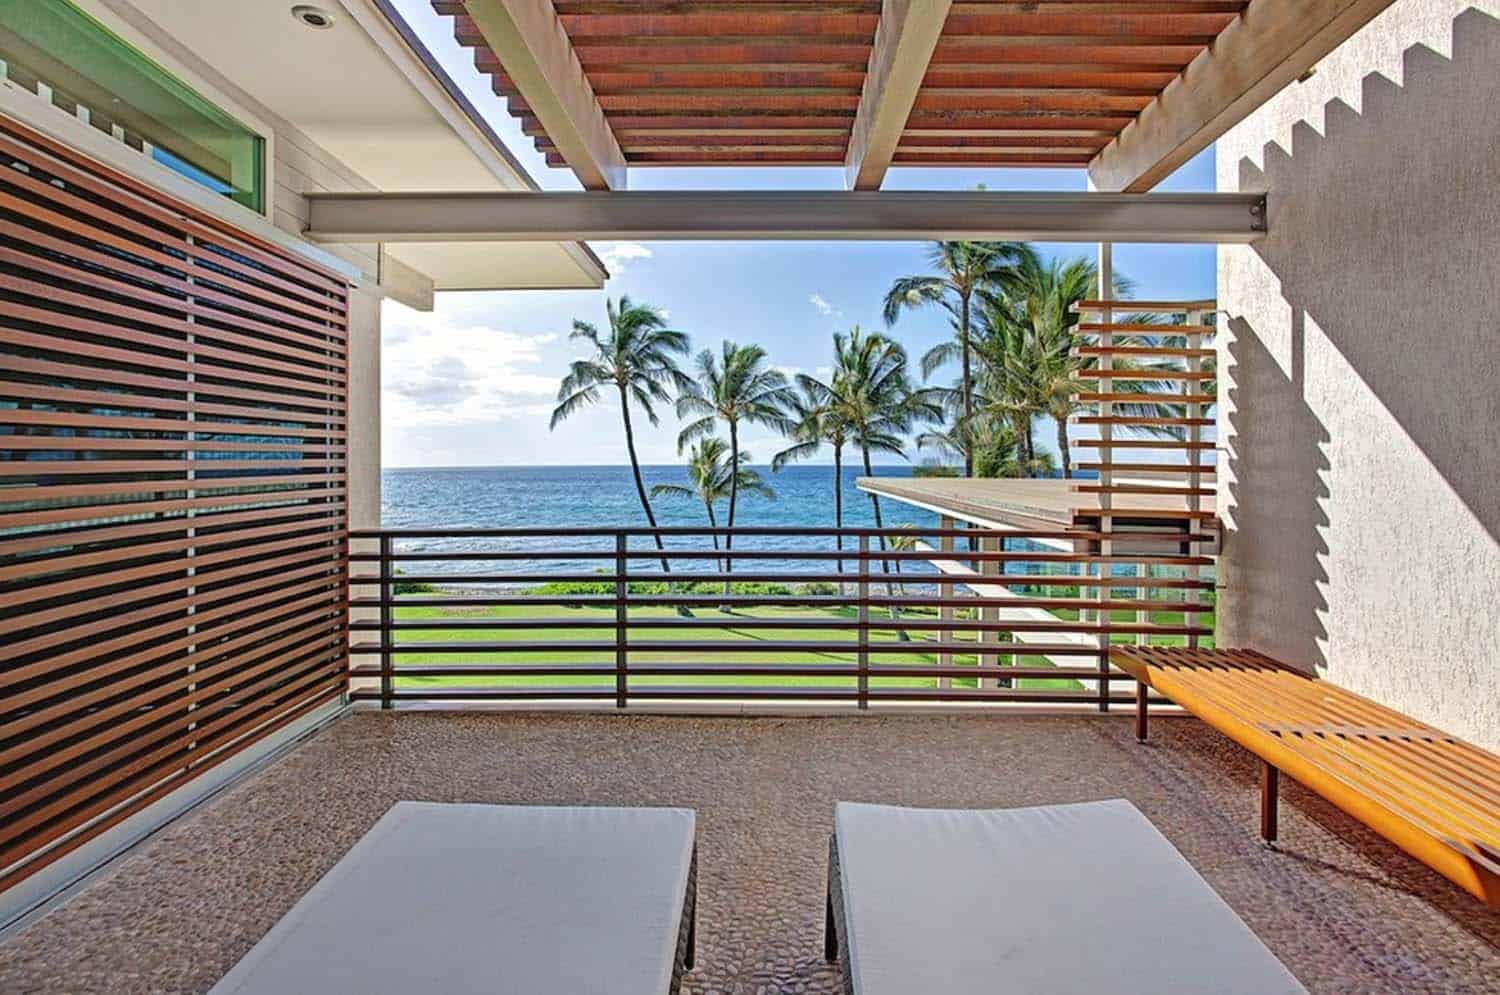 Tropical Maui Residence-Bossley Architects-18-1 Kindesign